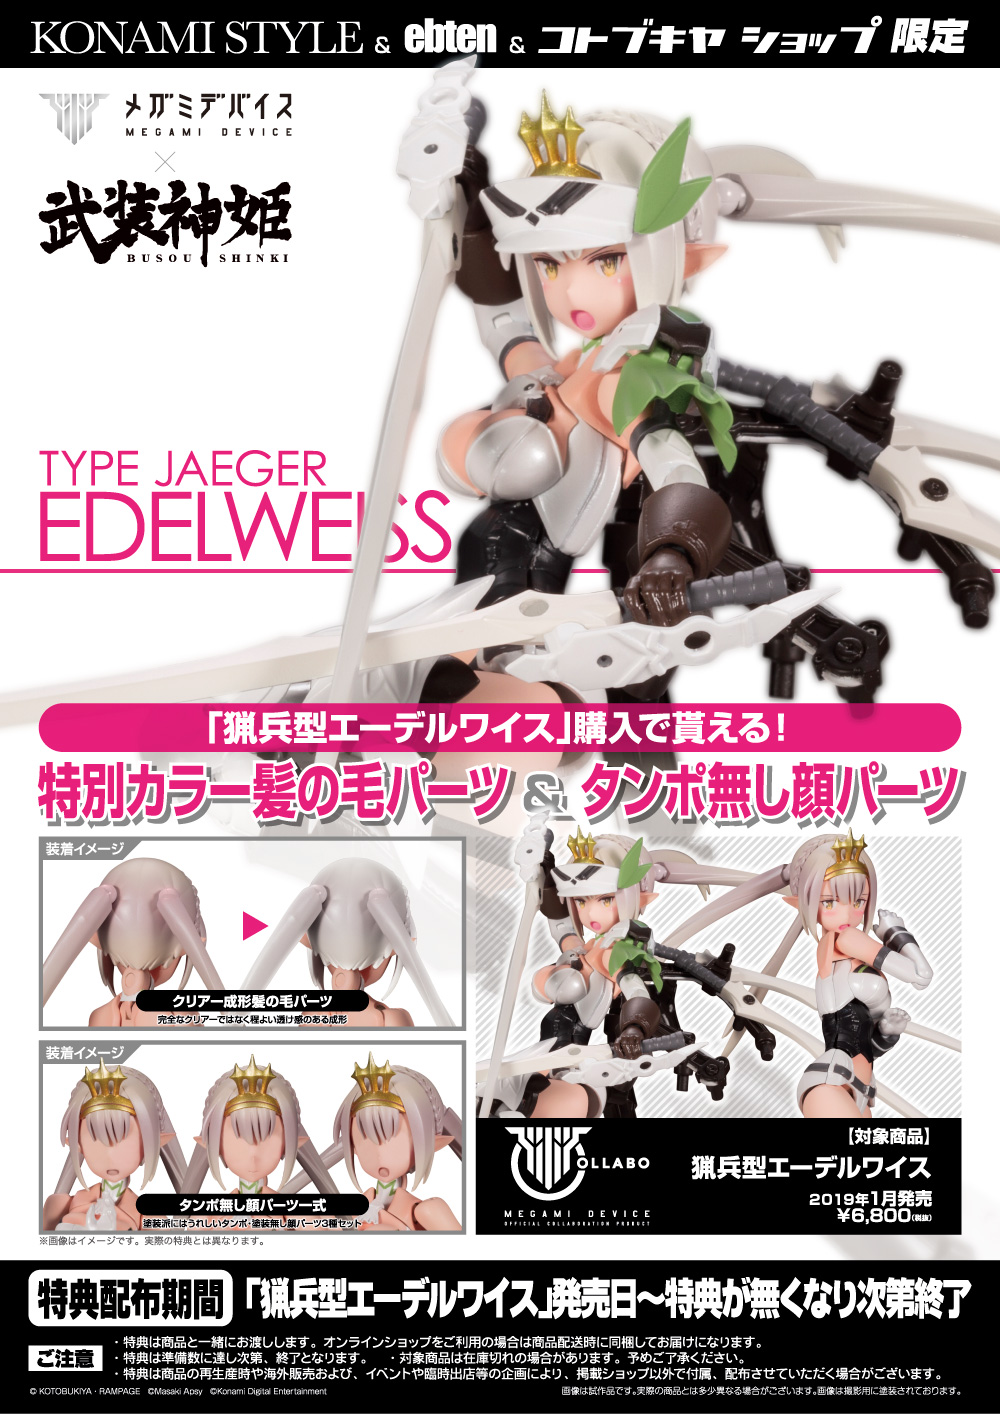 BUSOU SHINKI TYPE JAEGER EDELWEISS 1/1 PLASTIC MODEL KIT